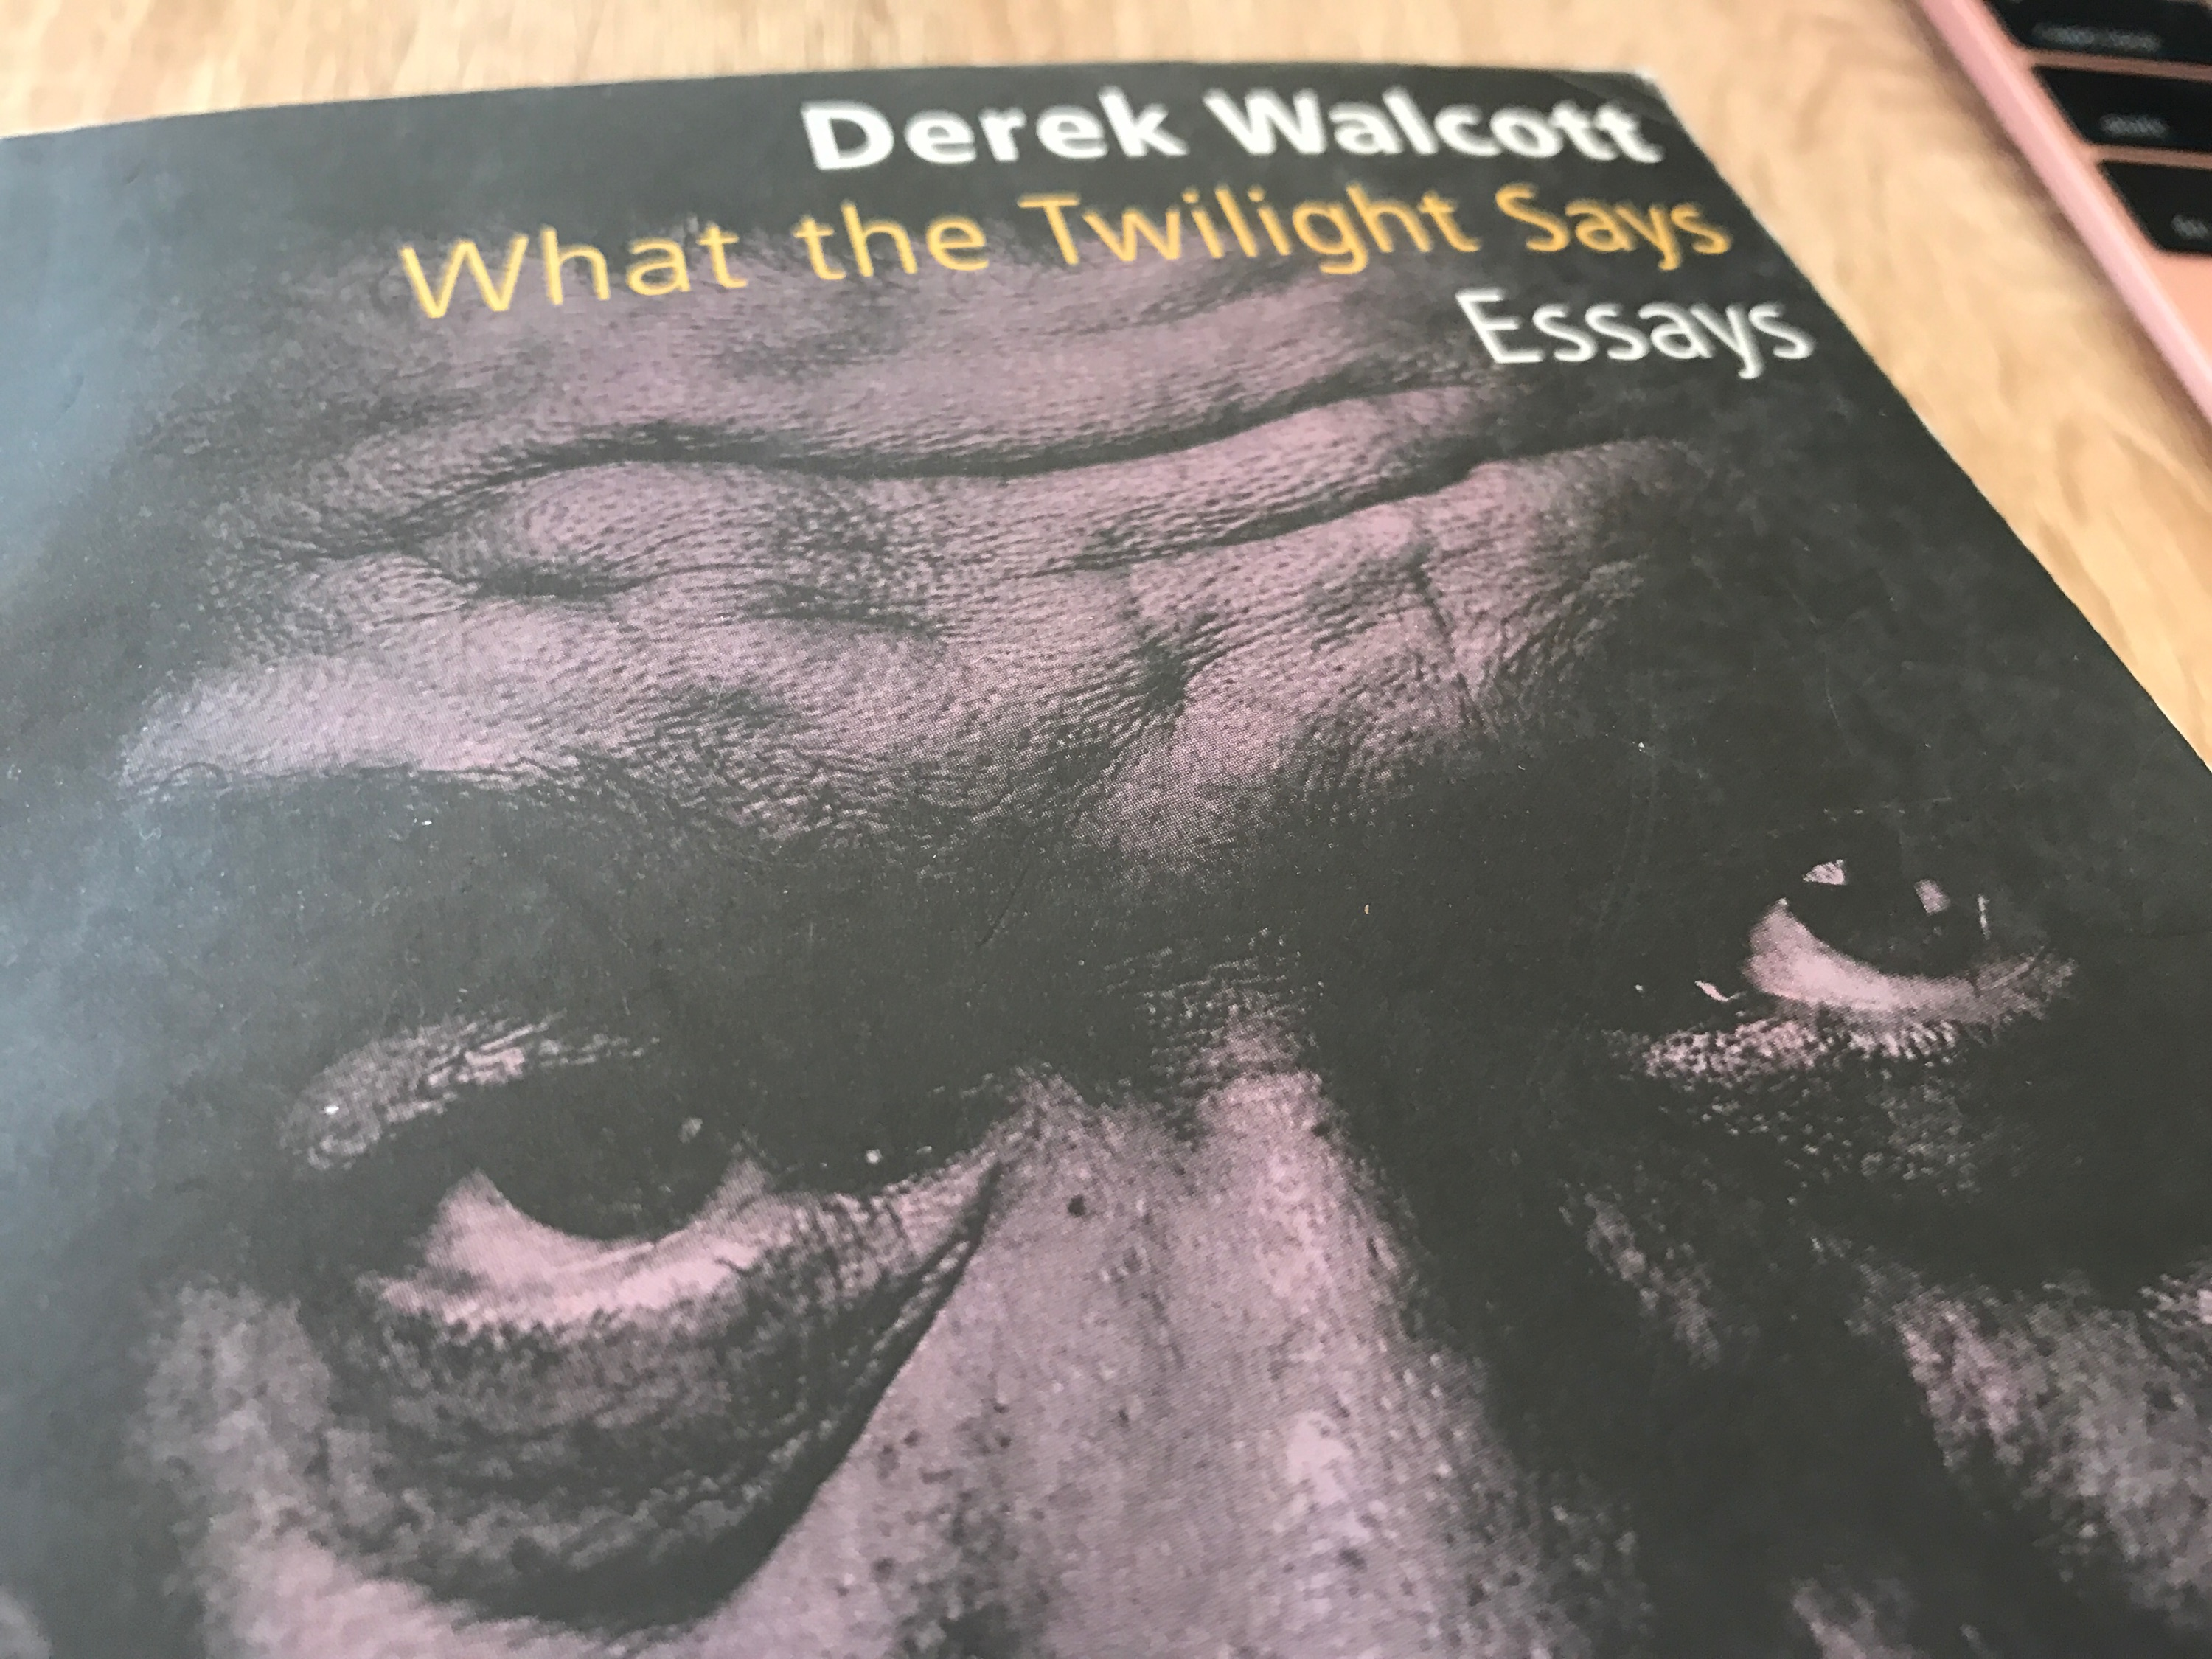 derek walcott in memory john e drabinski walcott s lecture upon receipt of the nobel prize the famous essay ldquothe antilles fragments of epic memory rdquo is impossible to quote